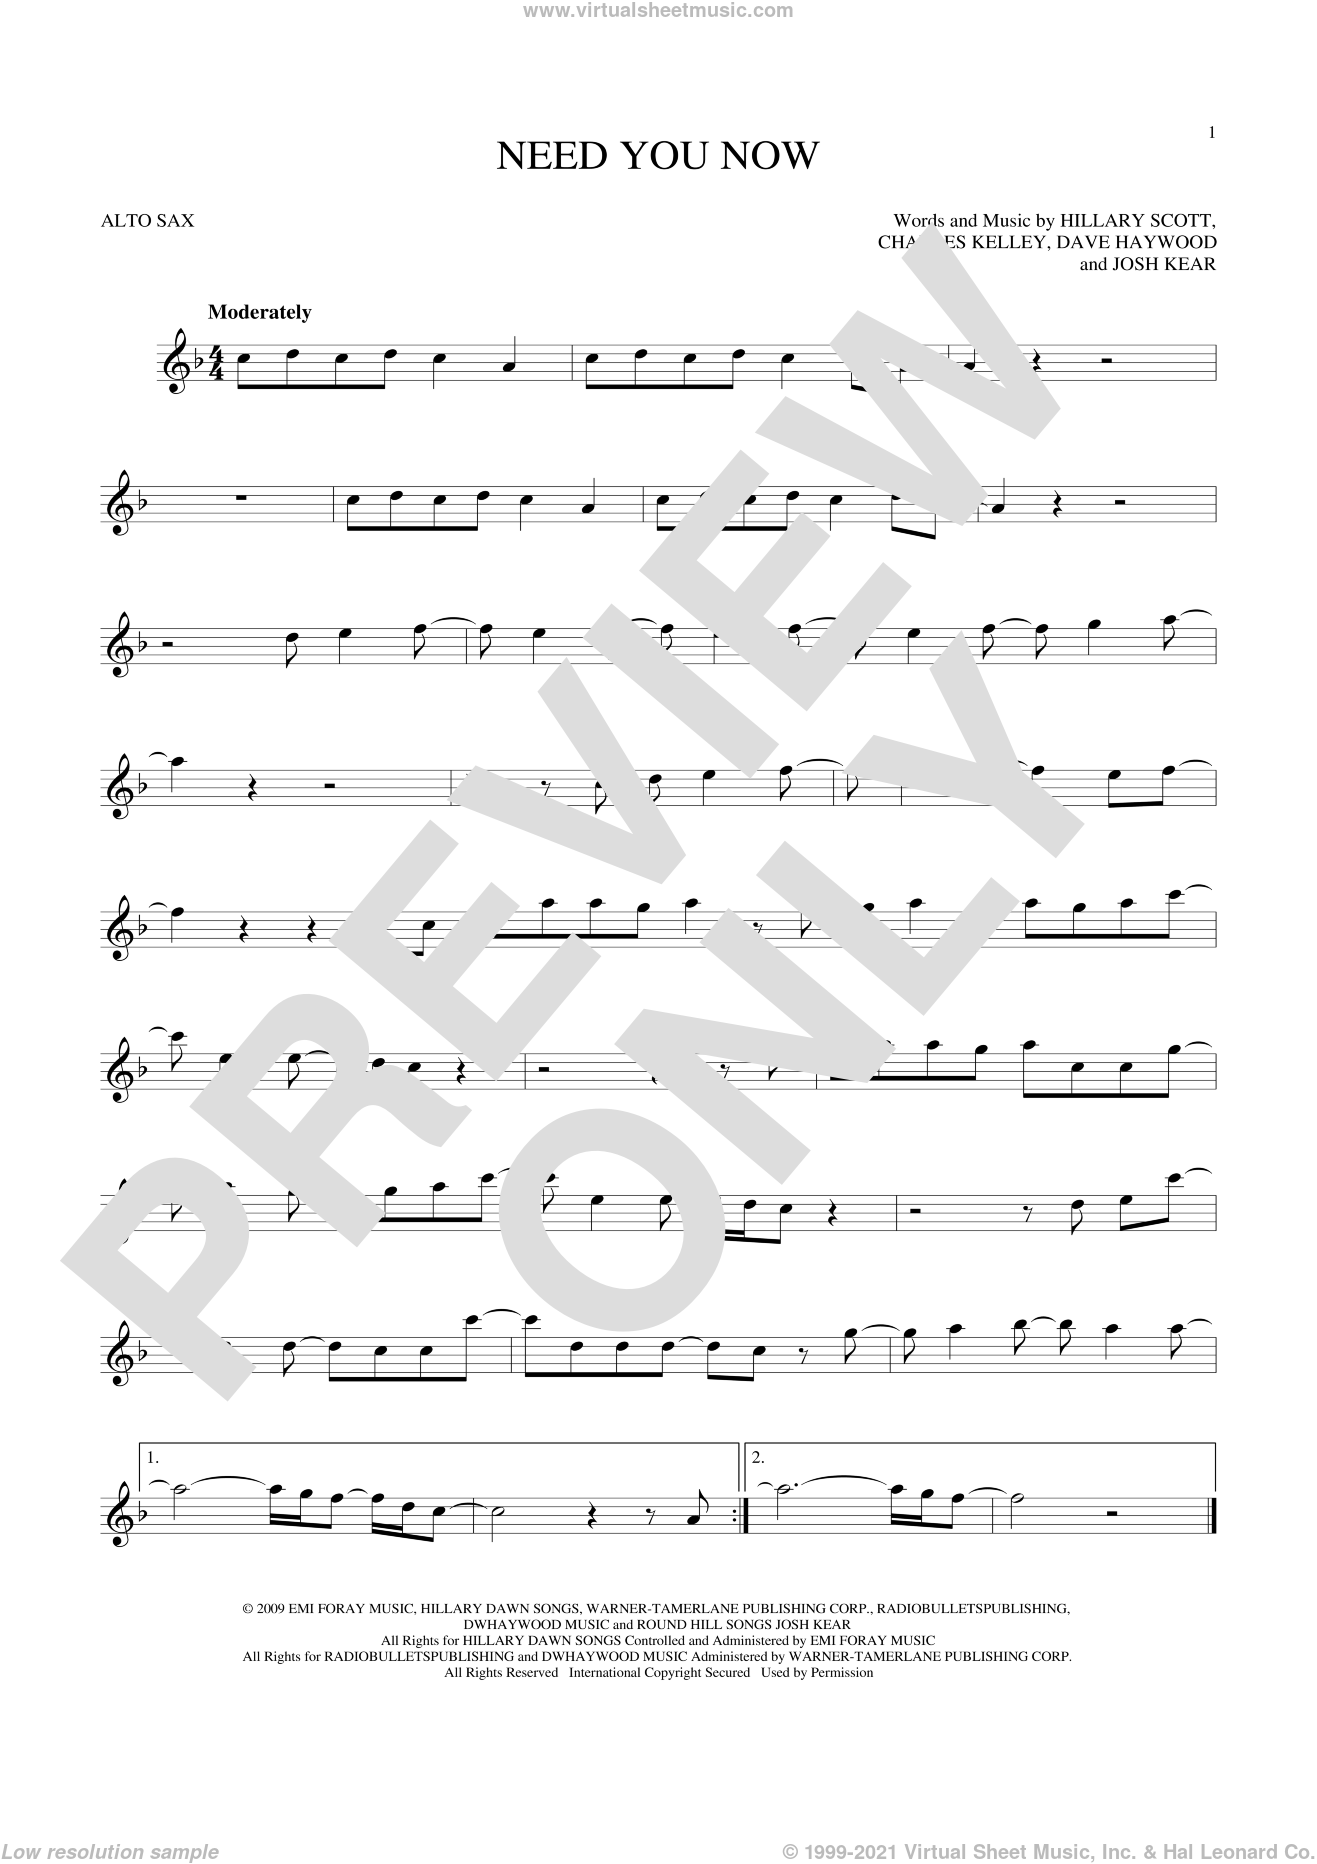 Need You Now sheet music for alto saxophone solo by Lady Antebellum, Charles Kelley, Dave Haywood, Hillary Scott and Josh Kear, intermediate skill level